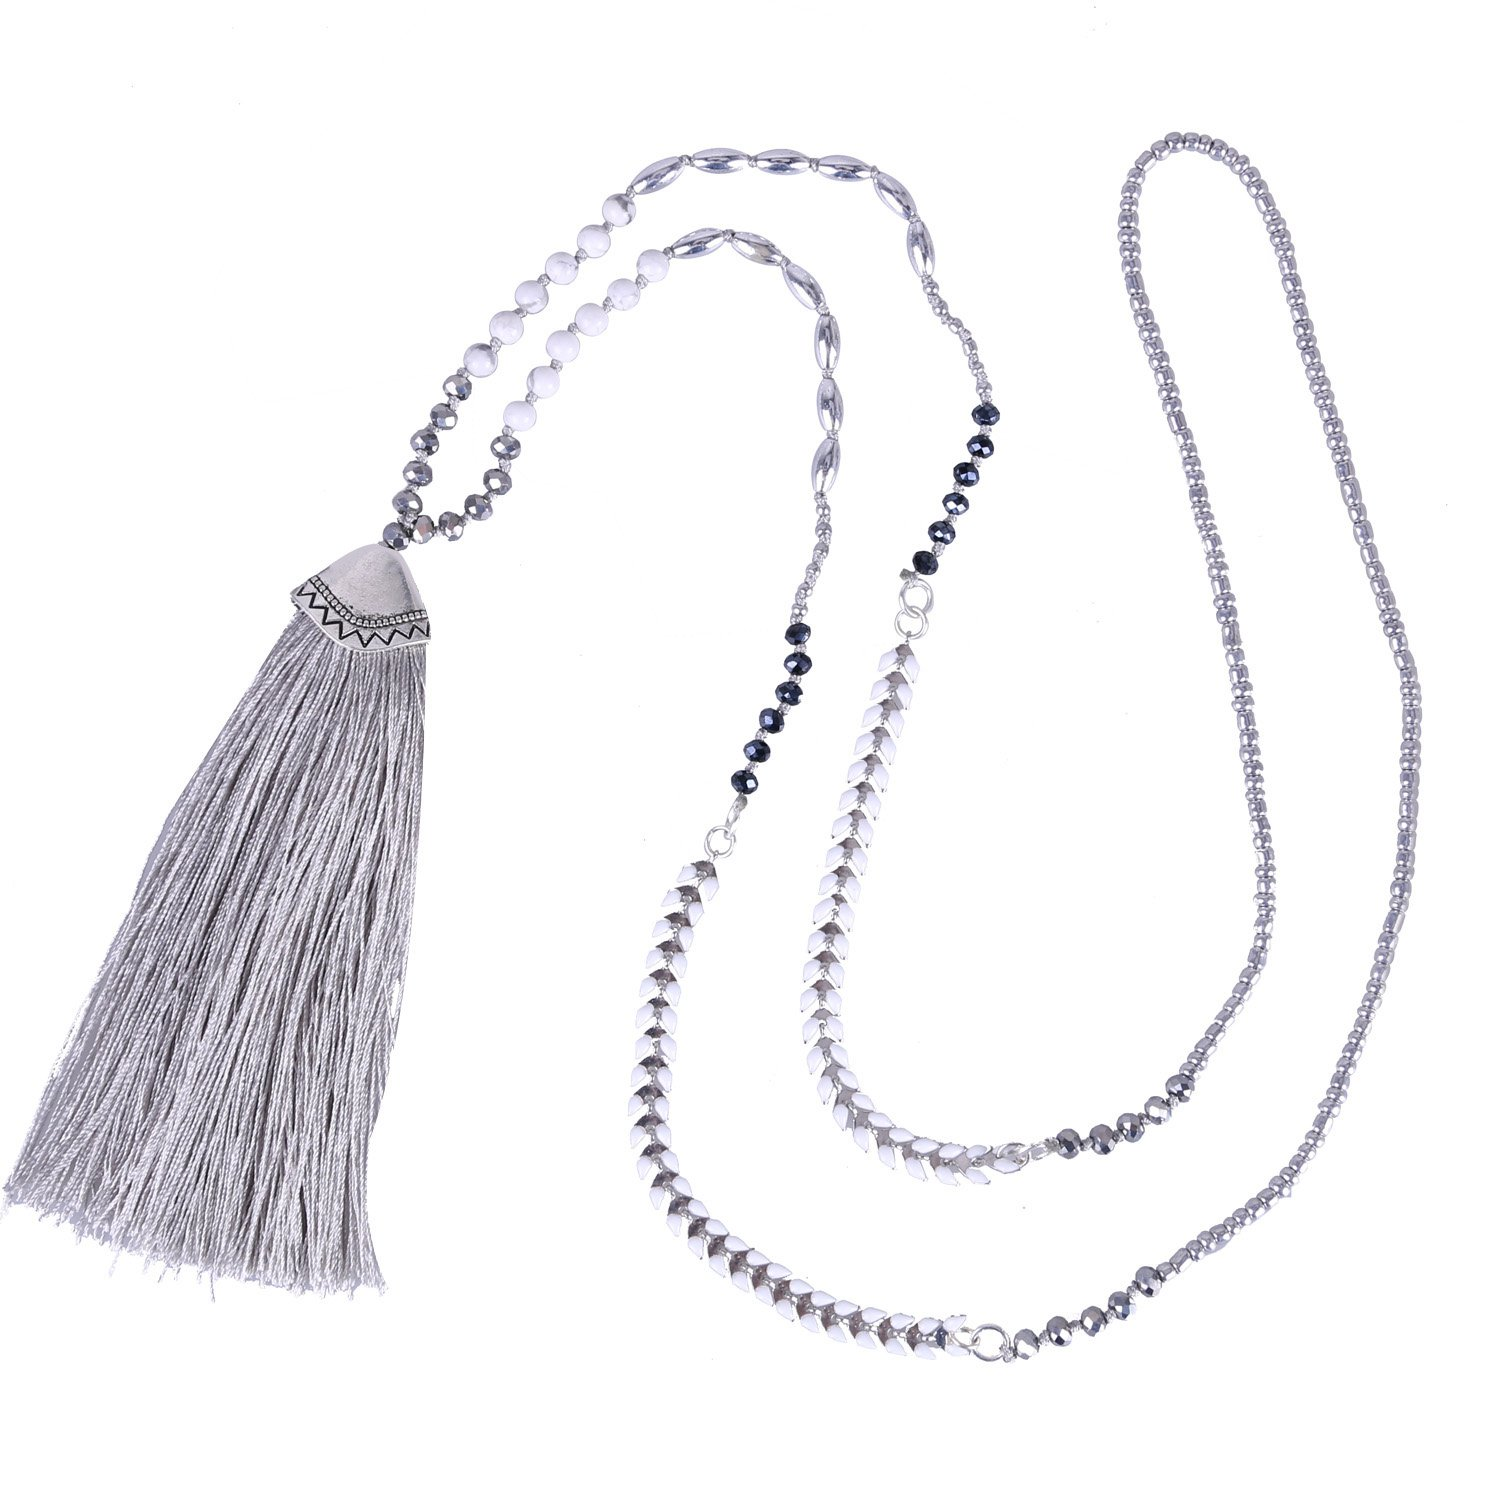 KELITCH Long Necklace for Women Synthetic-Turquoise Crystal Beaded Tassel Statement Necklace, Light Grey